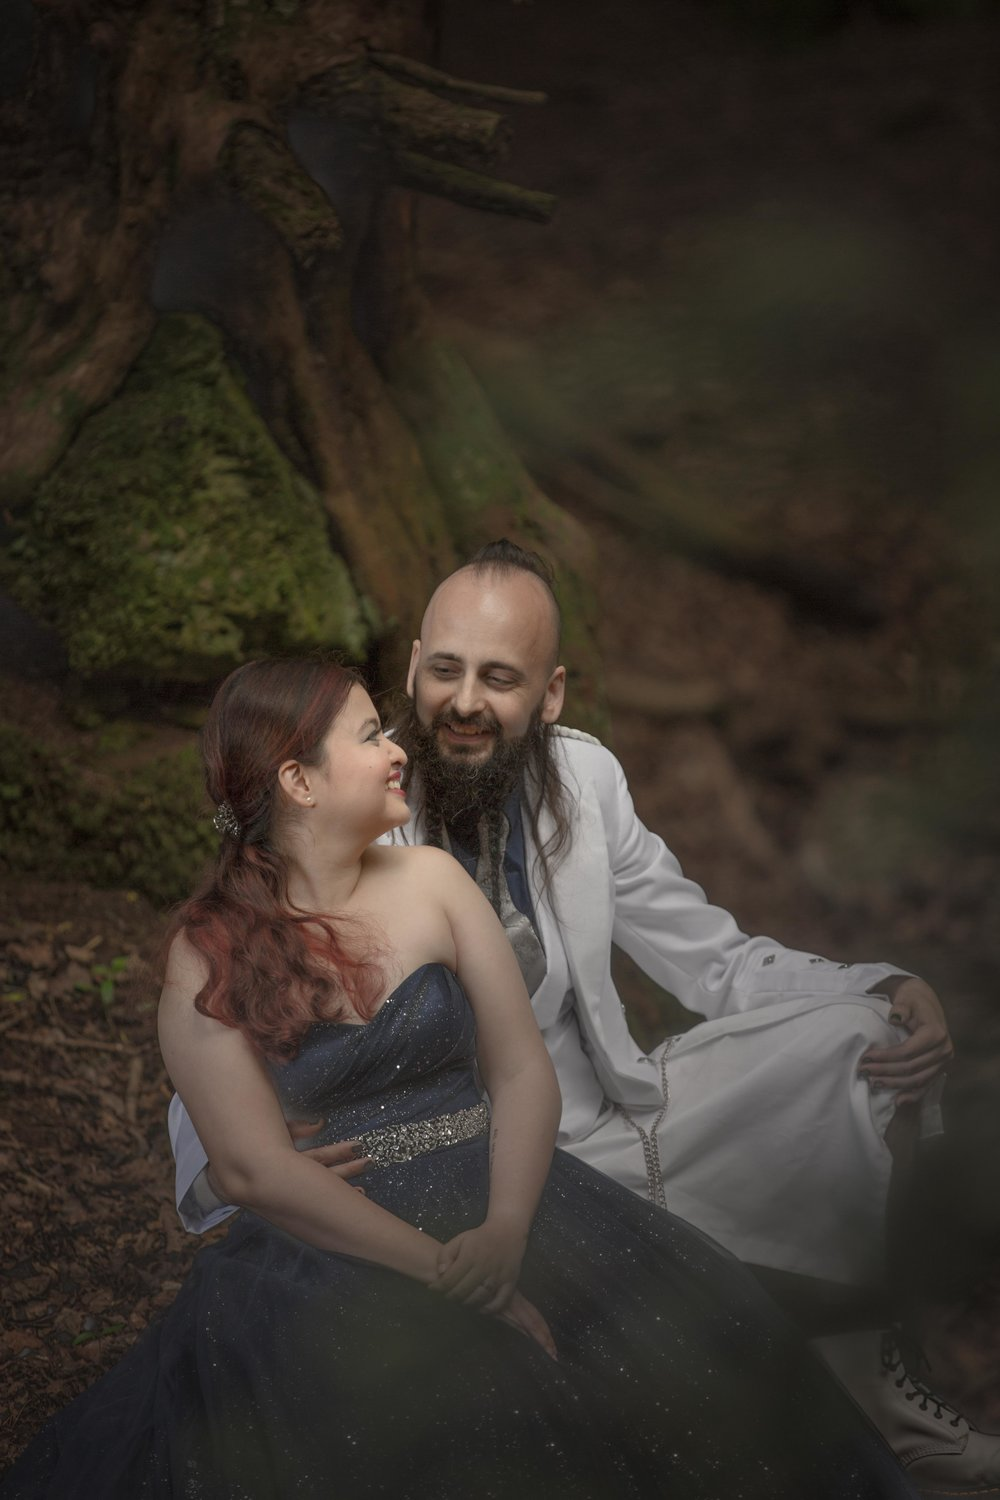 Puzzlewood-fairytale-fairy-forest-wood-prewedding-photoshoot-star-wars-couple-shoot-asian-wedding-photographer-natalia-smith-photography-11.jpg